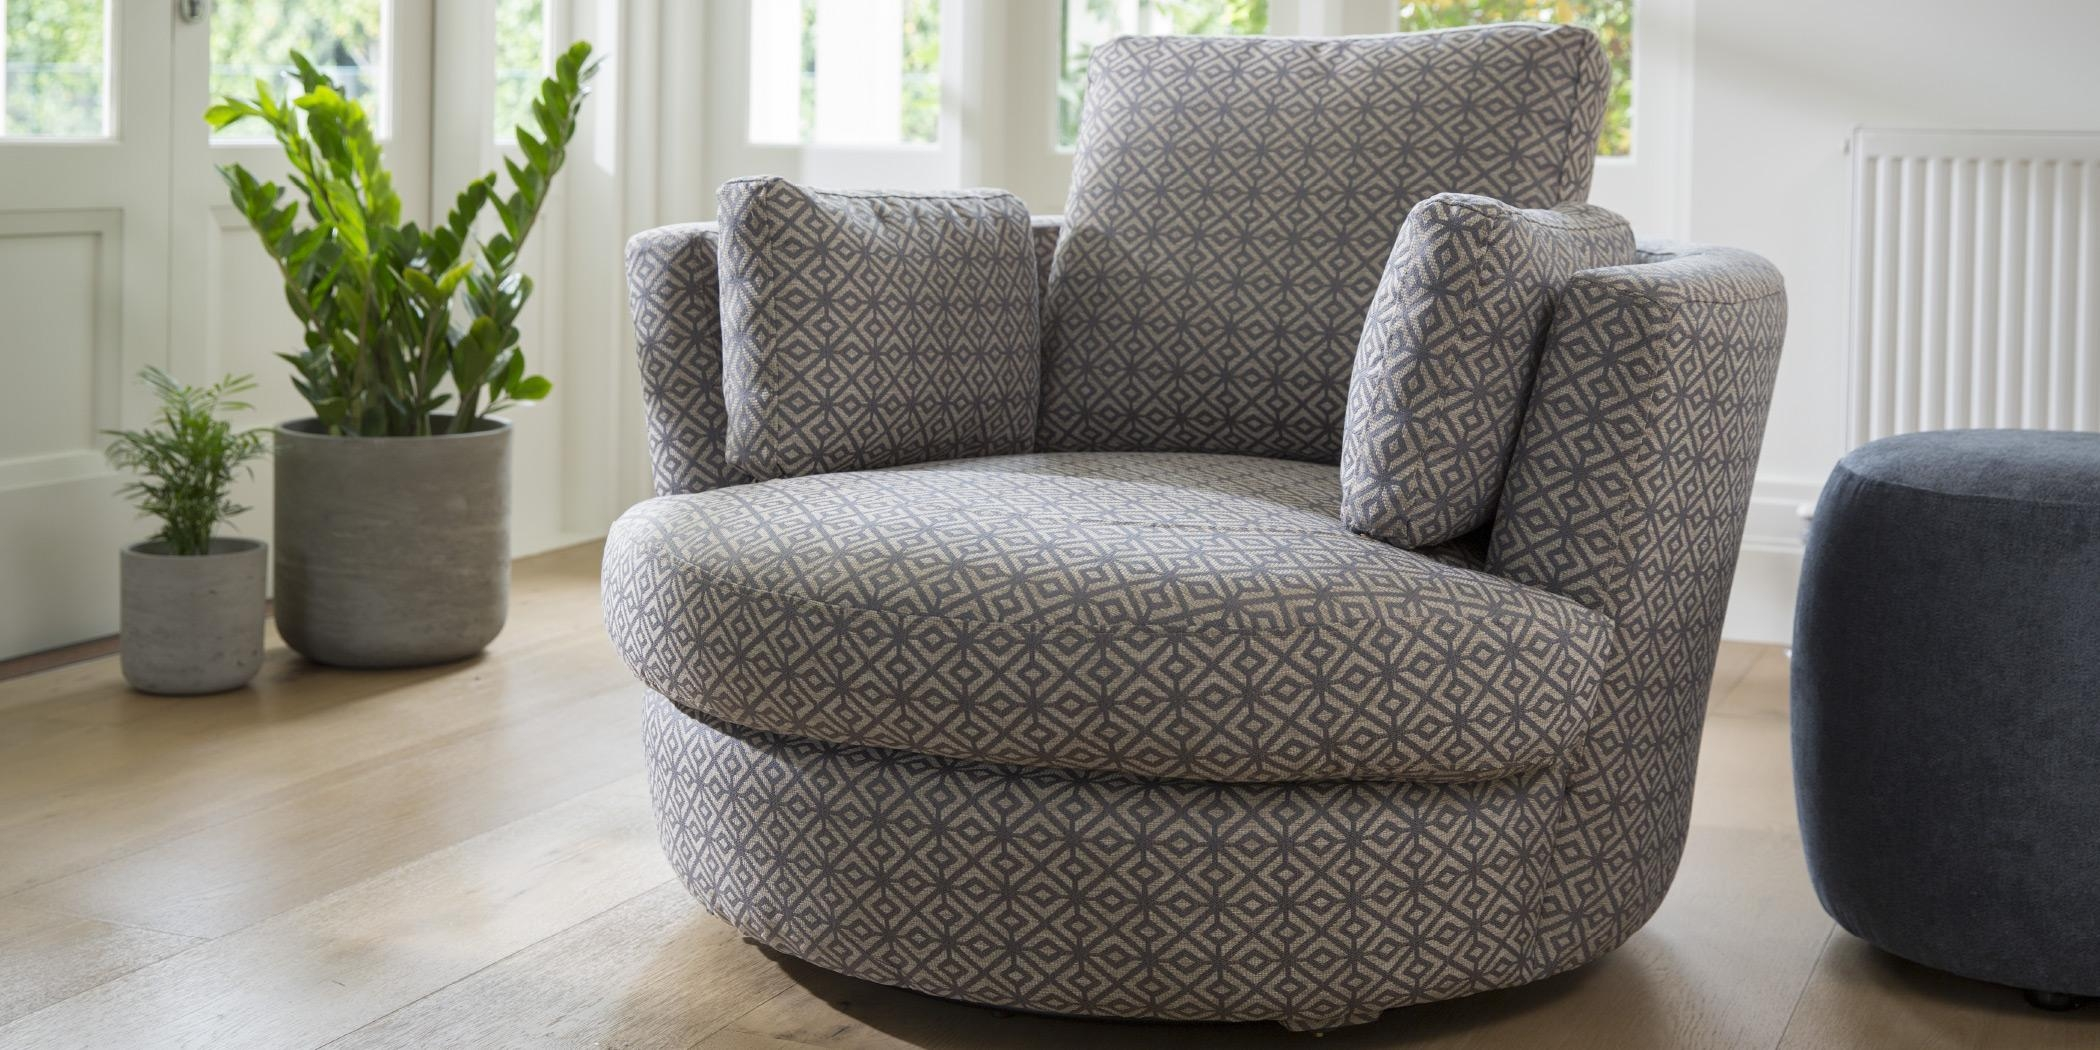 Snuggle Petite Chair | Leather, Fabric, Occasional Chairs | Plush In Snuggle Sofas (View 16 of 20)